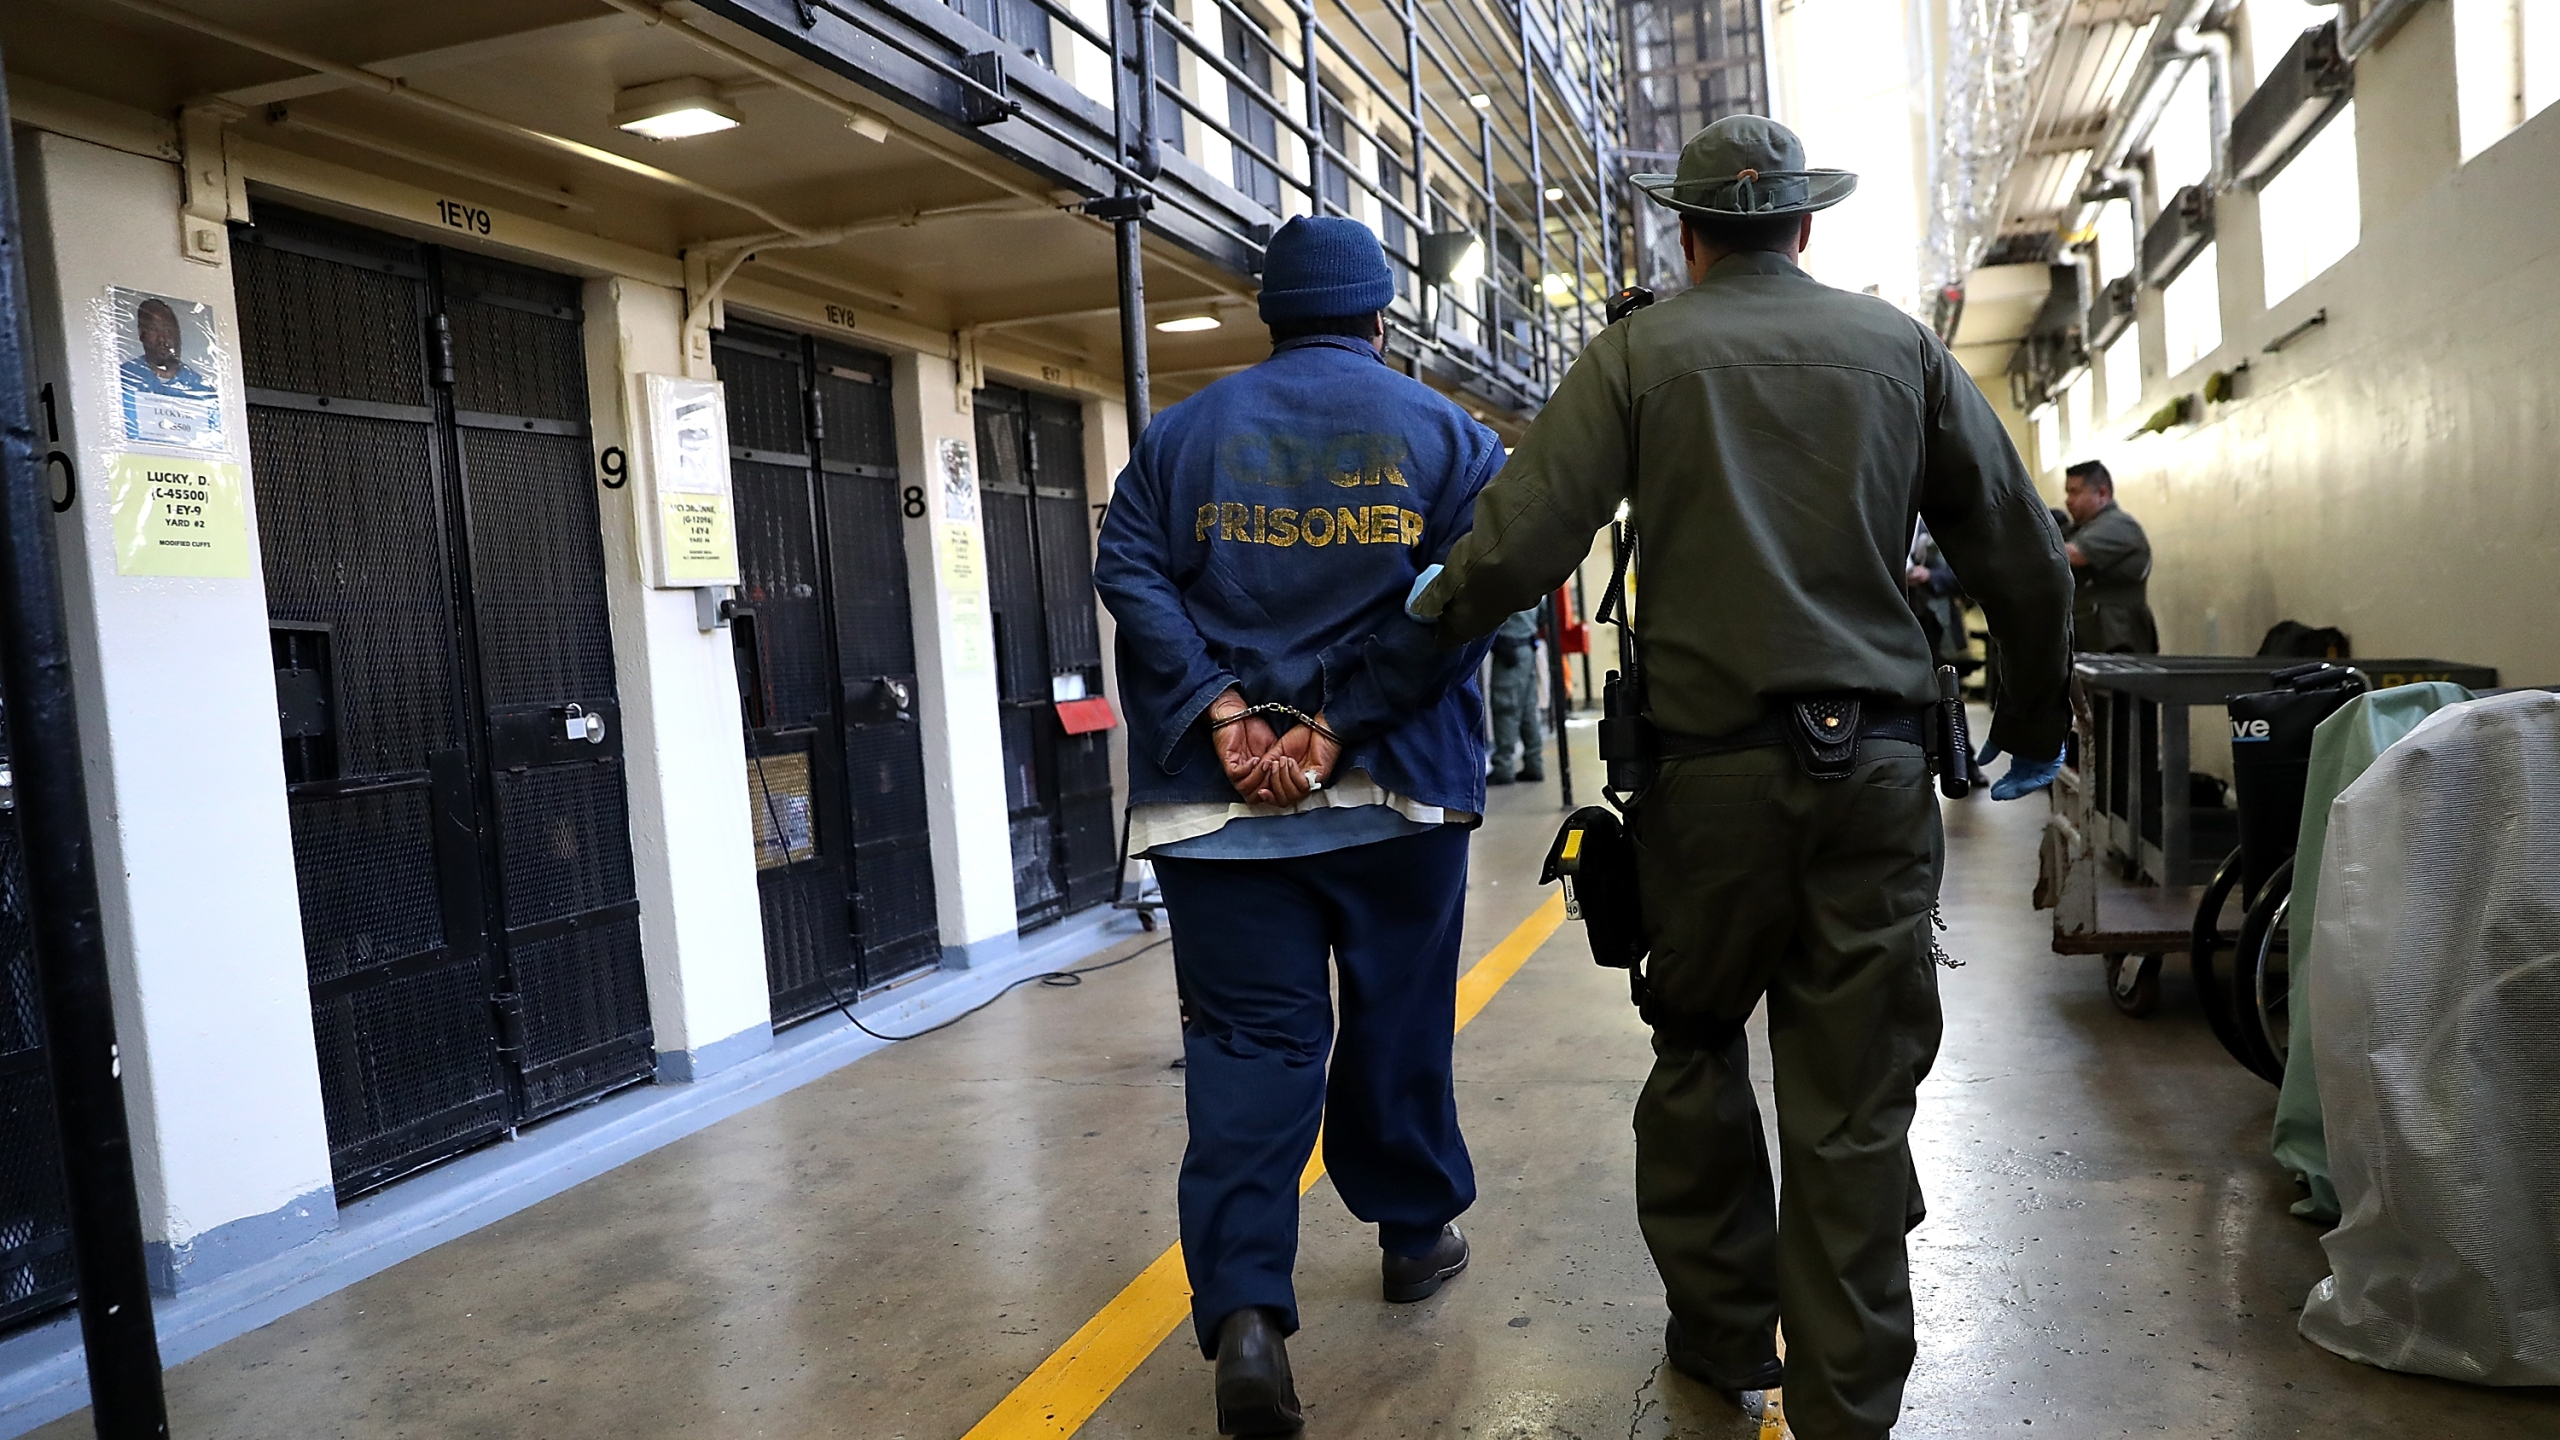 An armed California Department of Corrections and Rehabilitation officer escorts a condemned inmate at San Quentin State Prison's death row on Aug. 15, 2016. (Credit: Justin Sullivan / Getty Images)